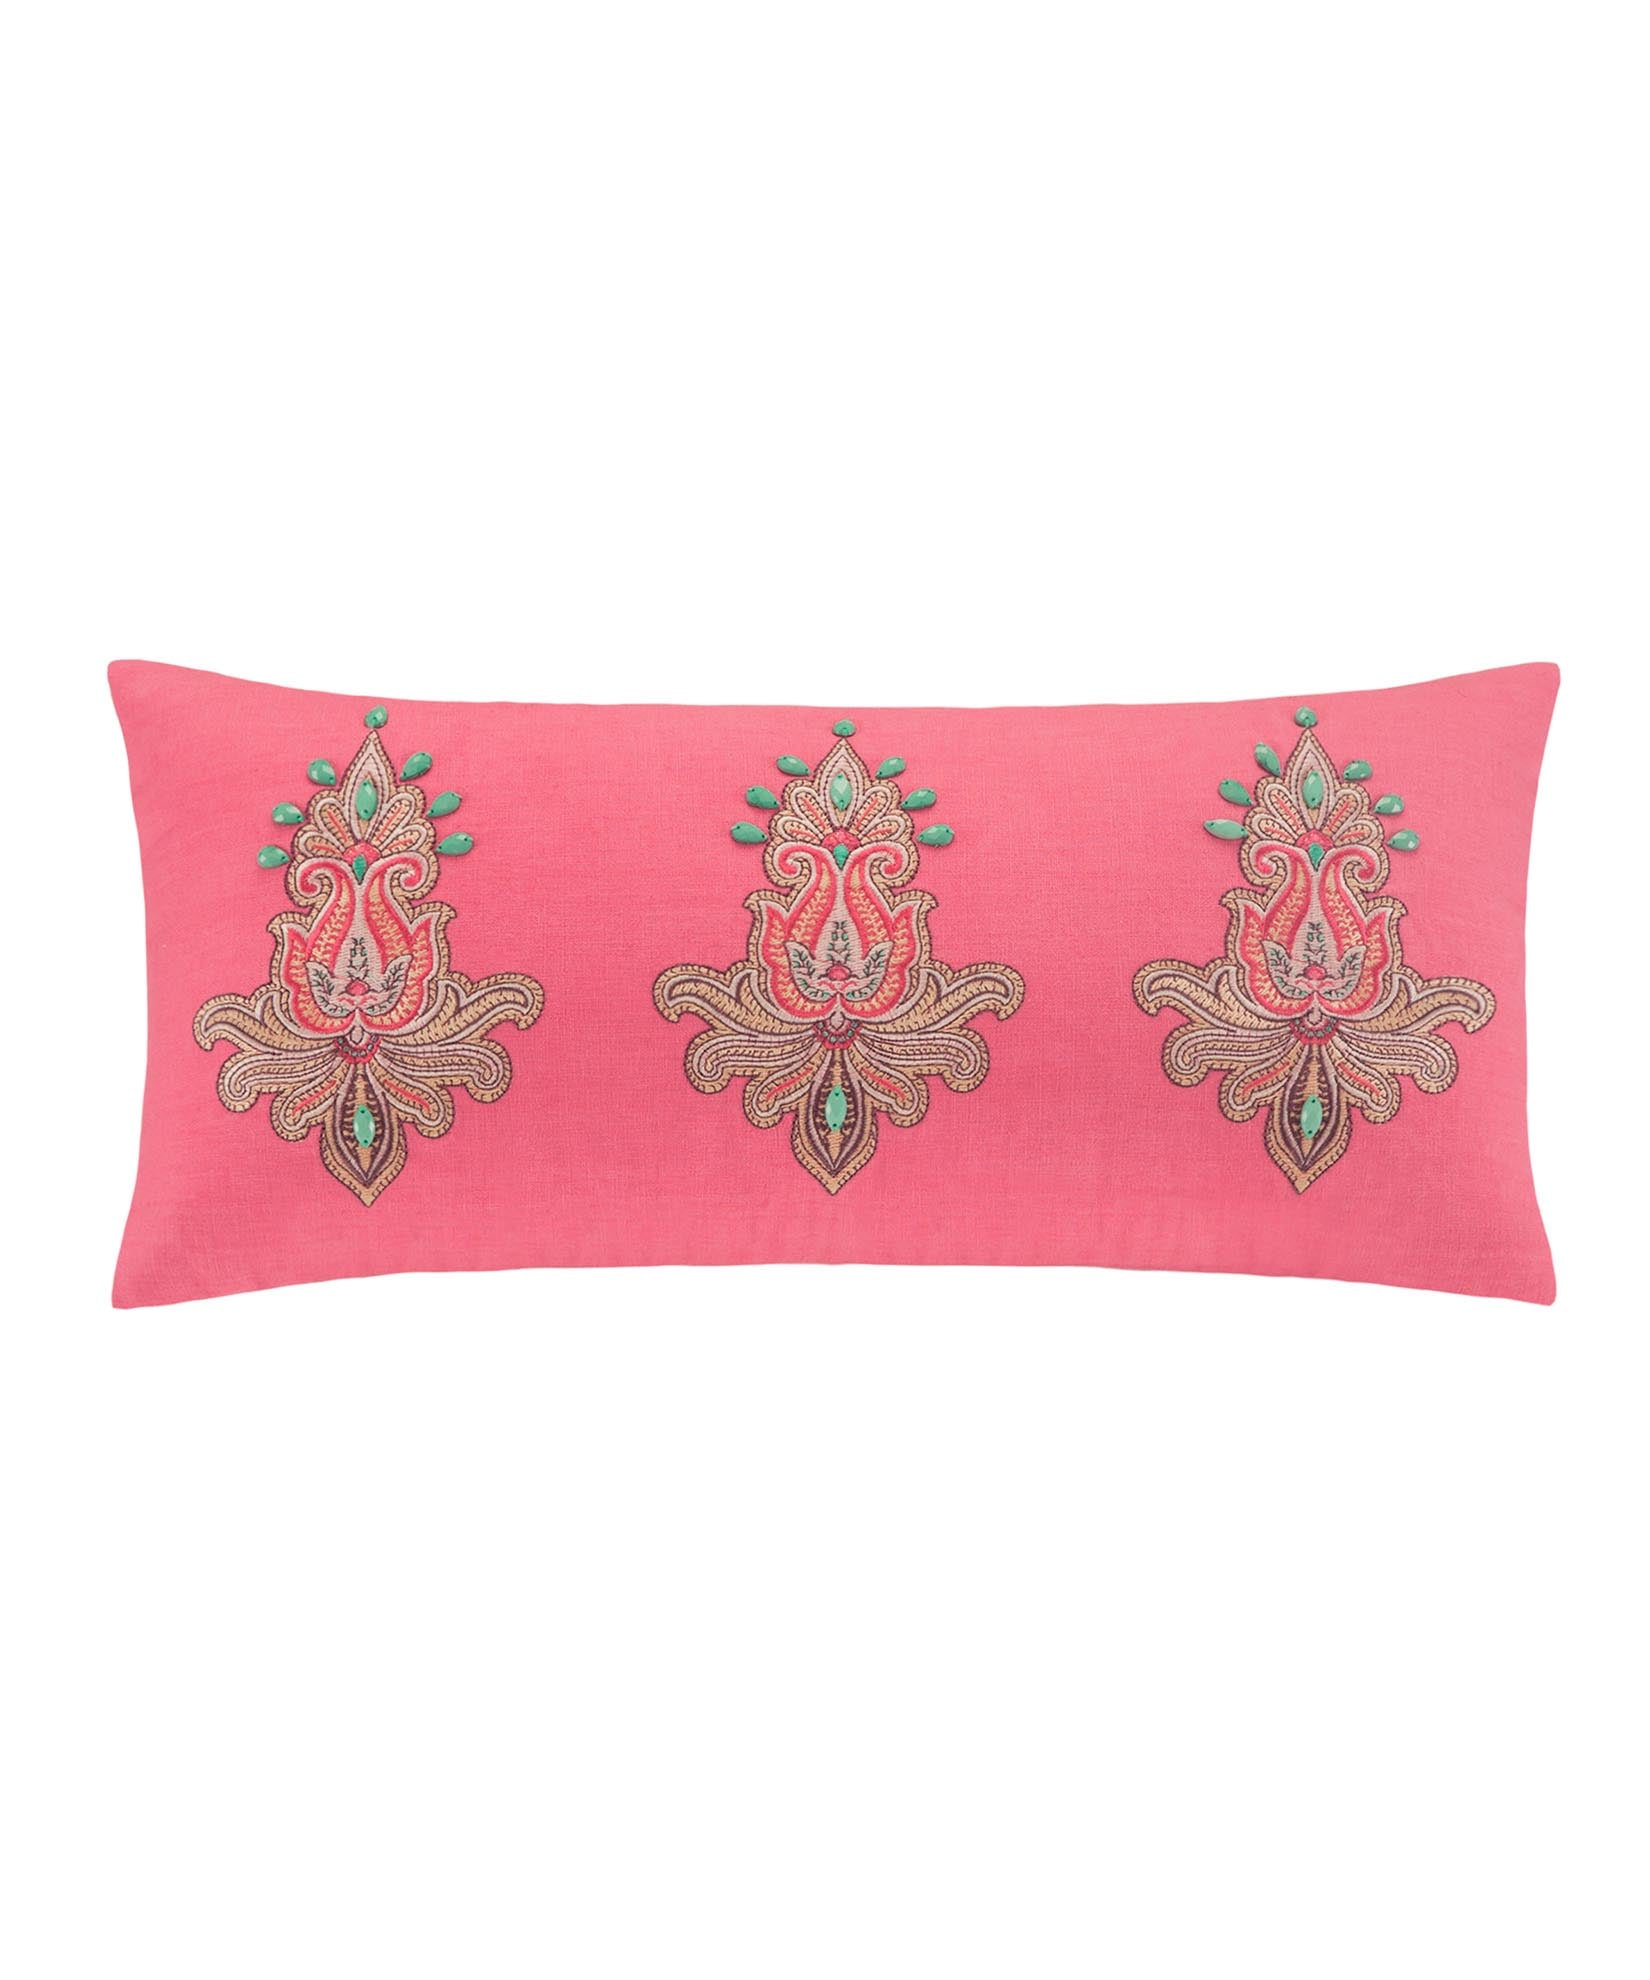 Coral - Guinevere Oblong Pillow